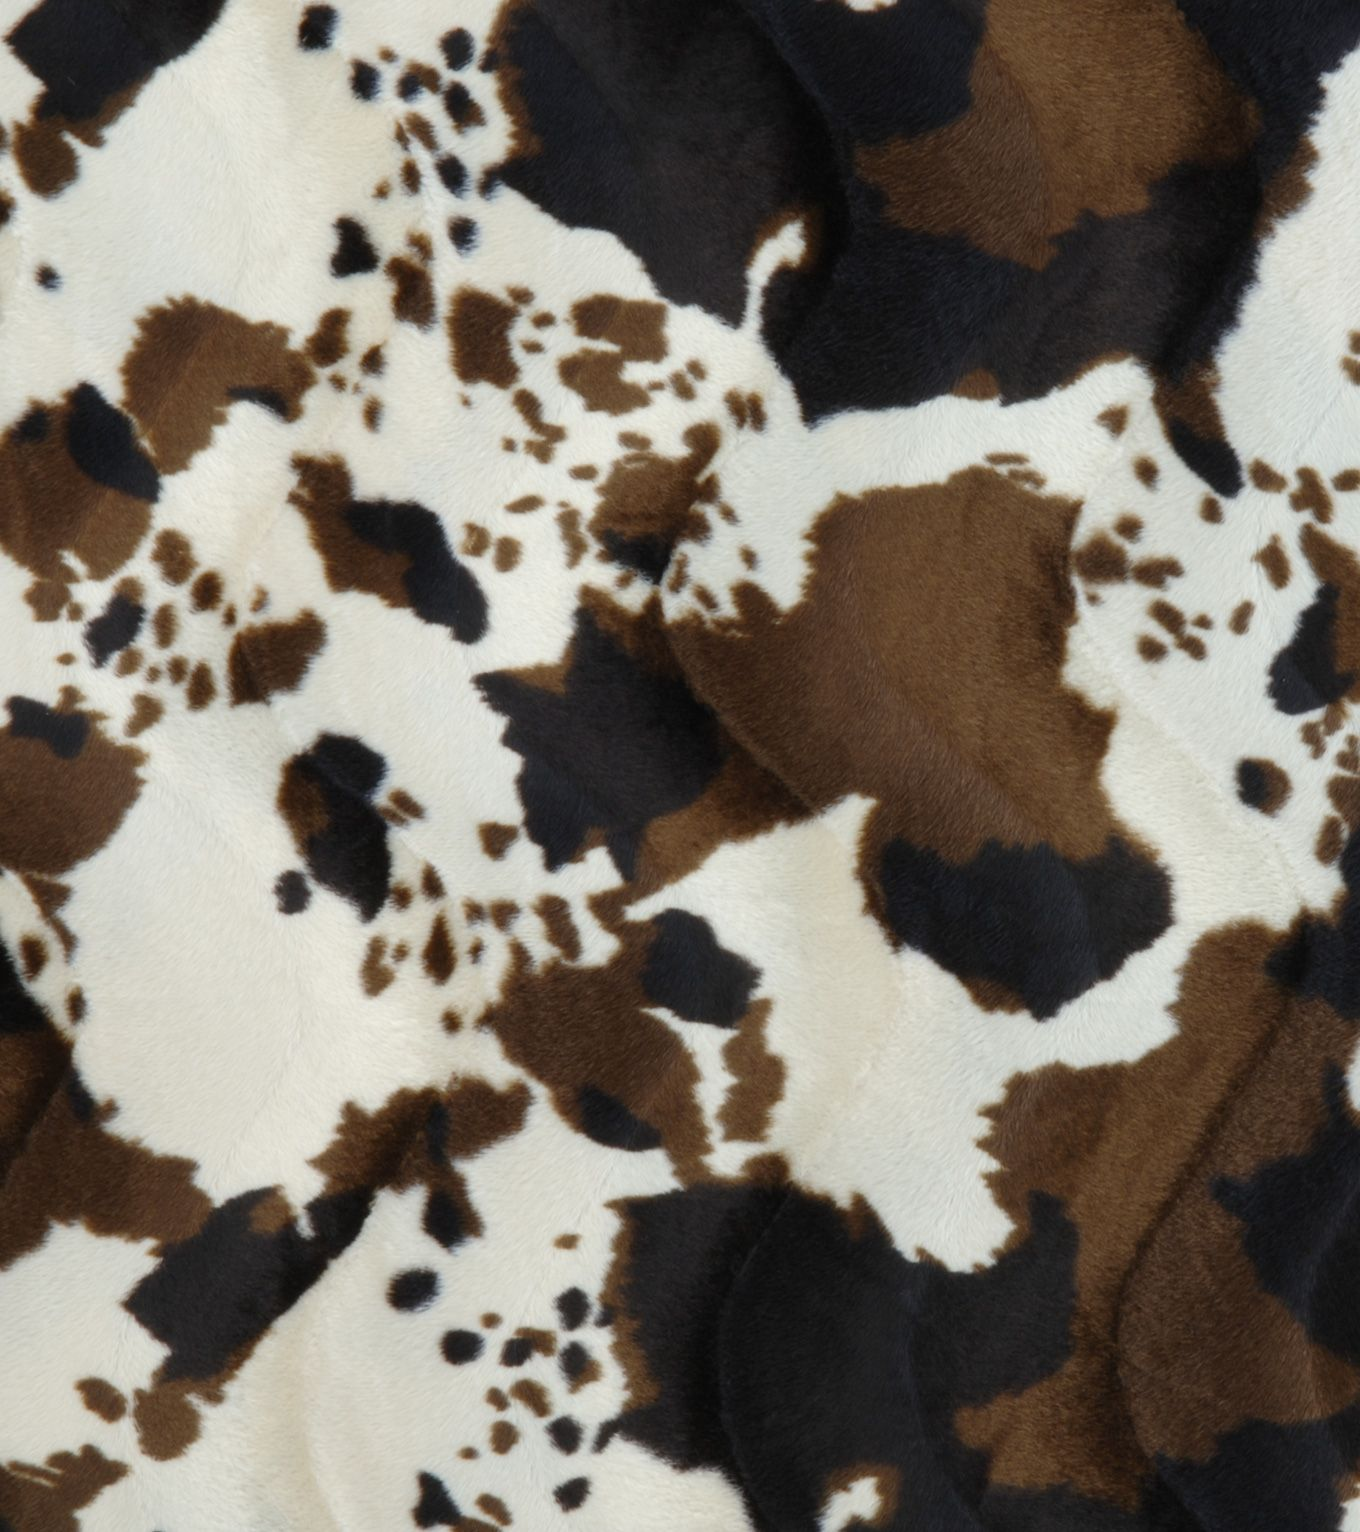 Fabrics For Retail Displays & Events Cow print fabric